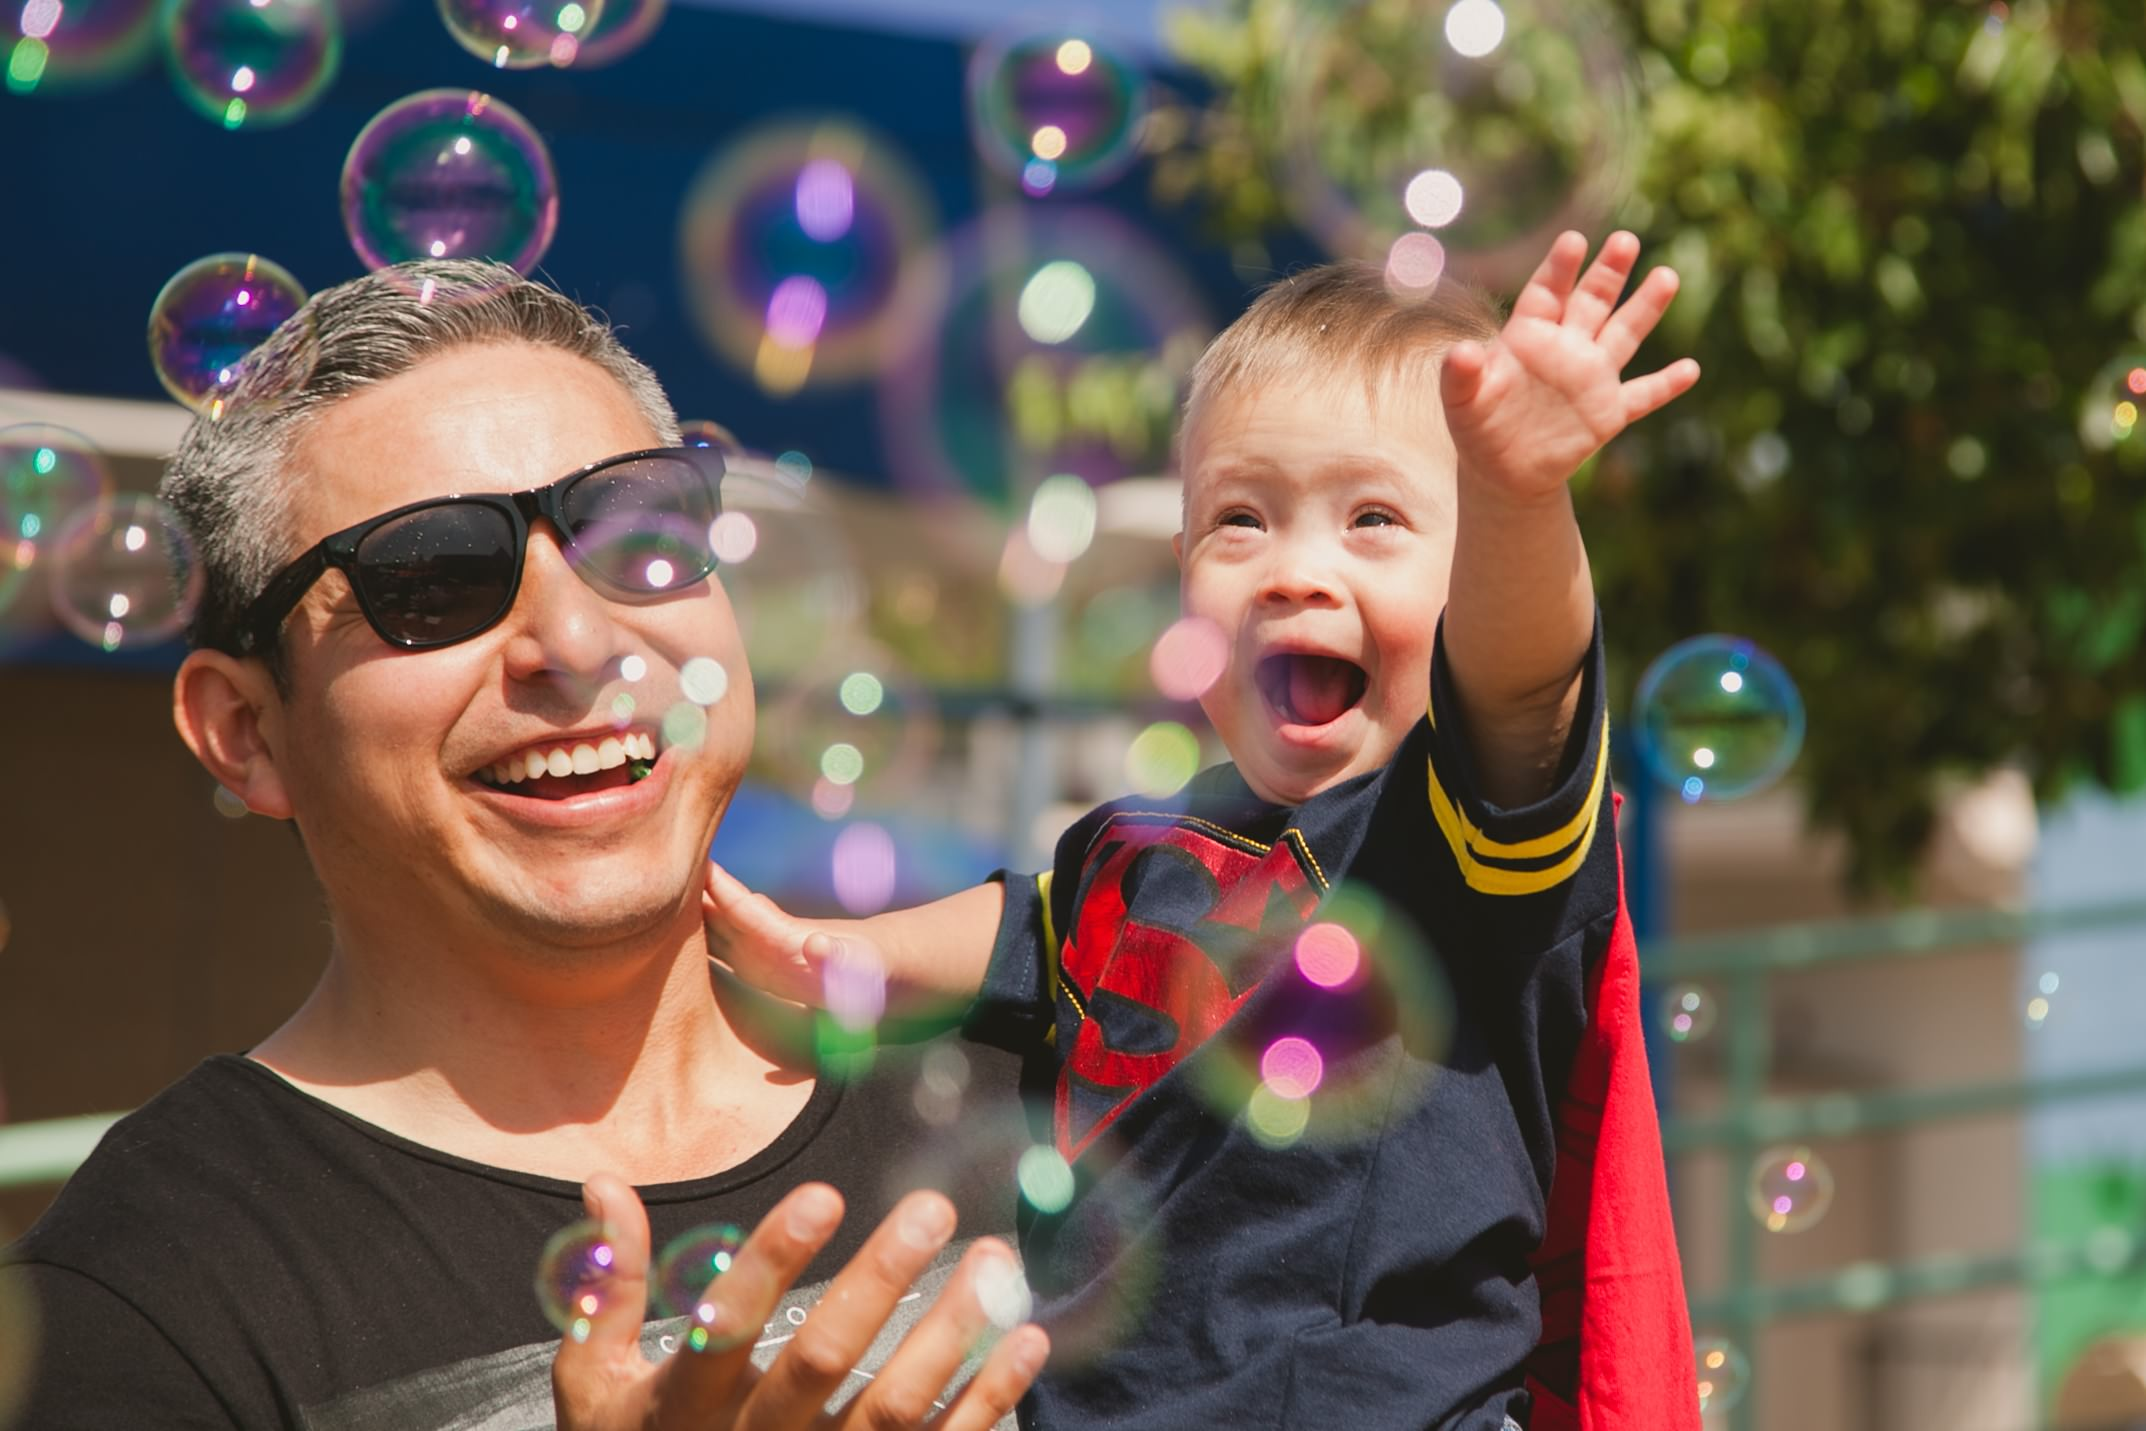 Toddler dressed as Superman enjoying bubbles with his father.